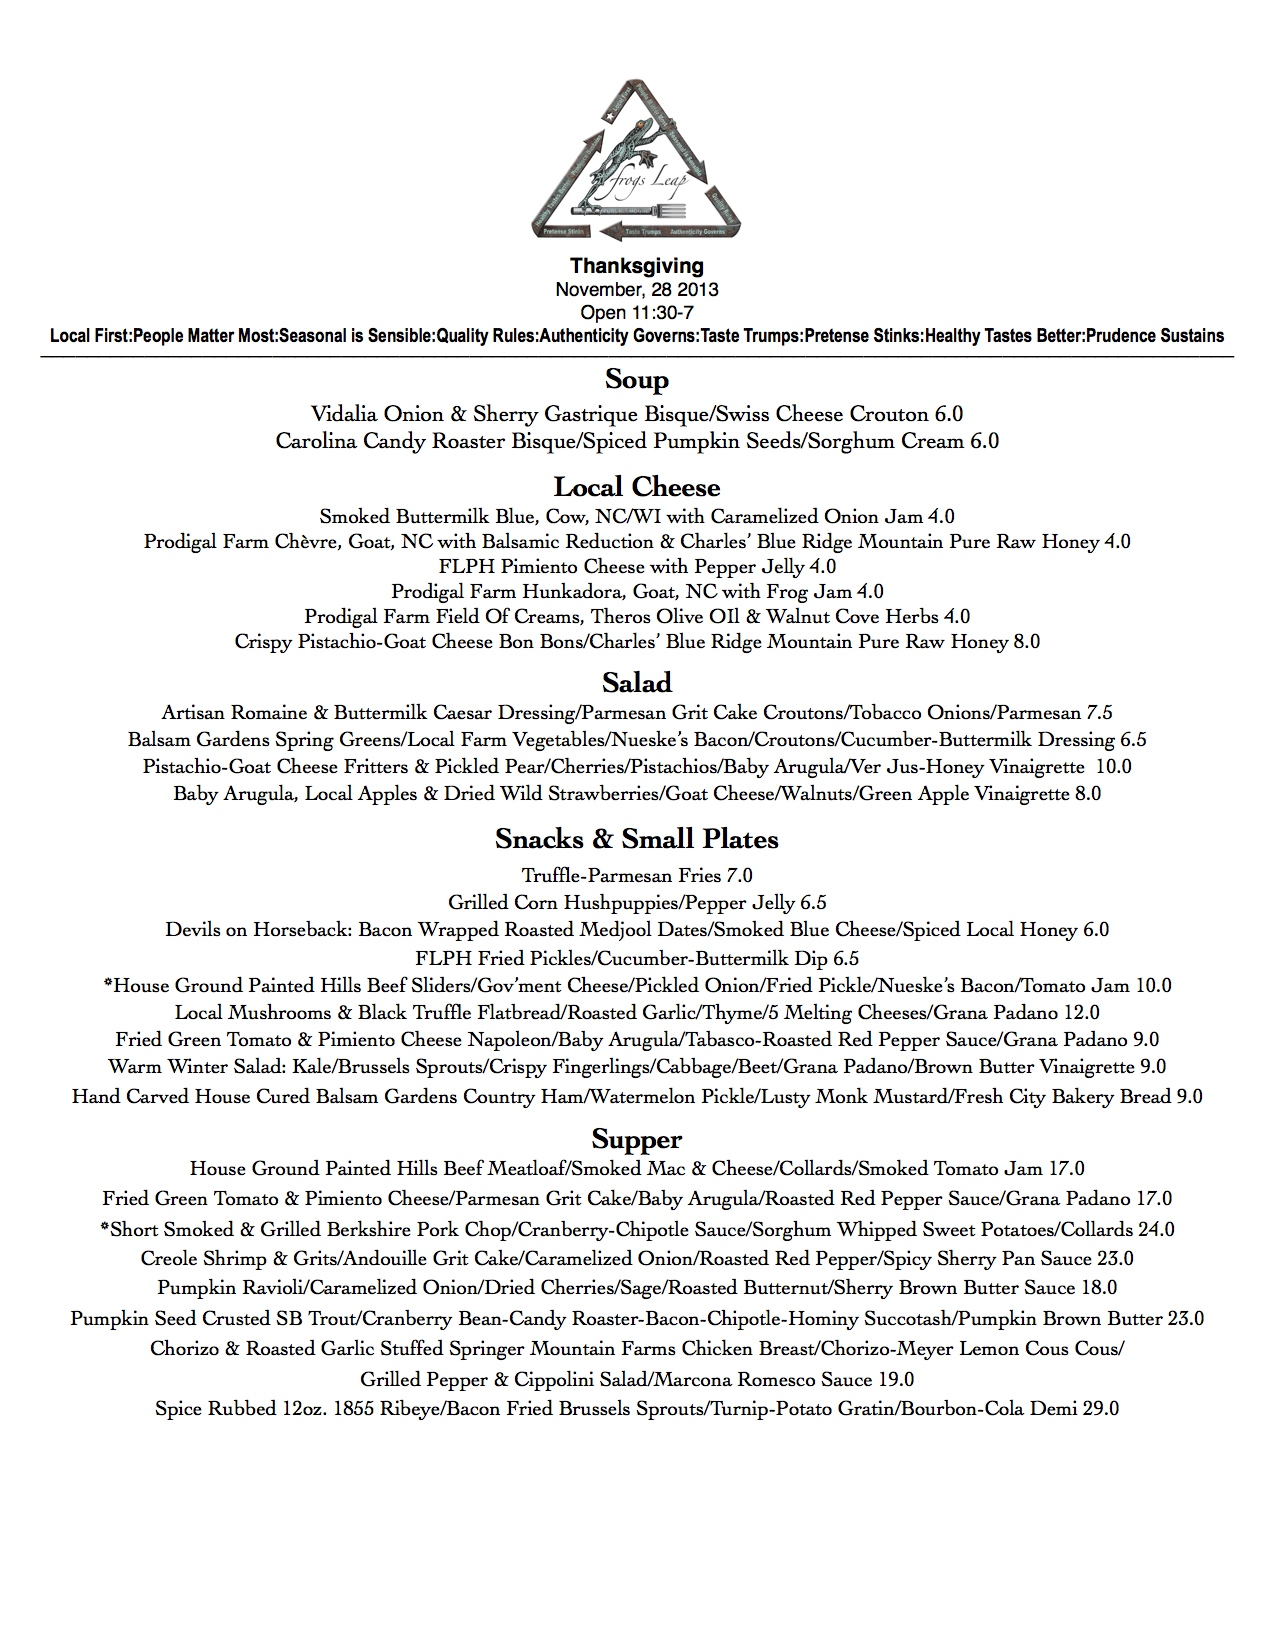 Thanksgiving 2013 Menu JPG